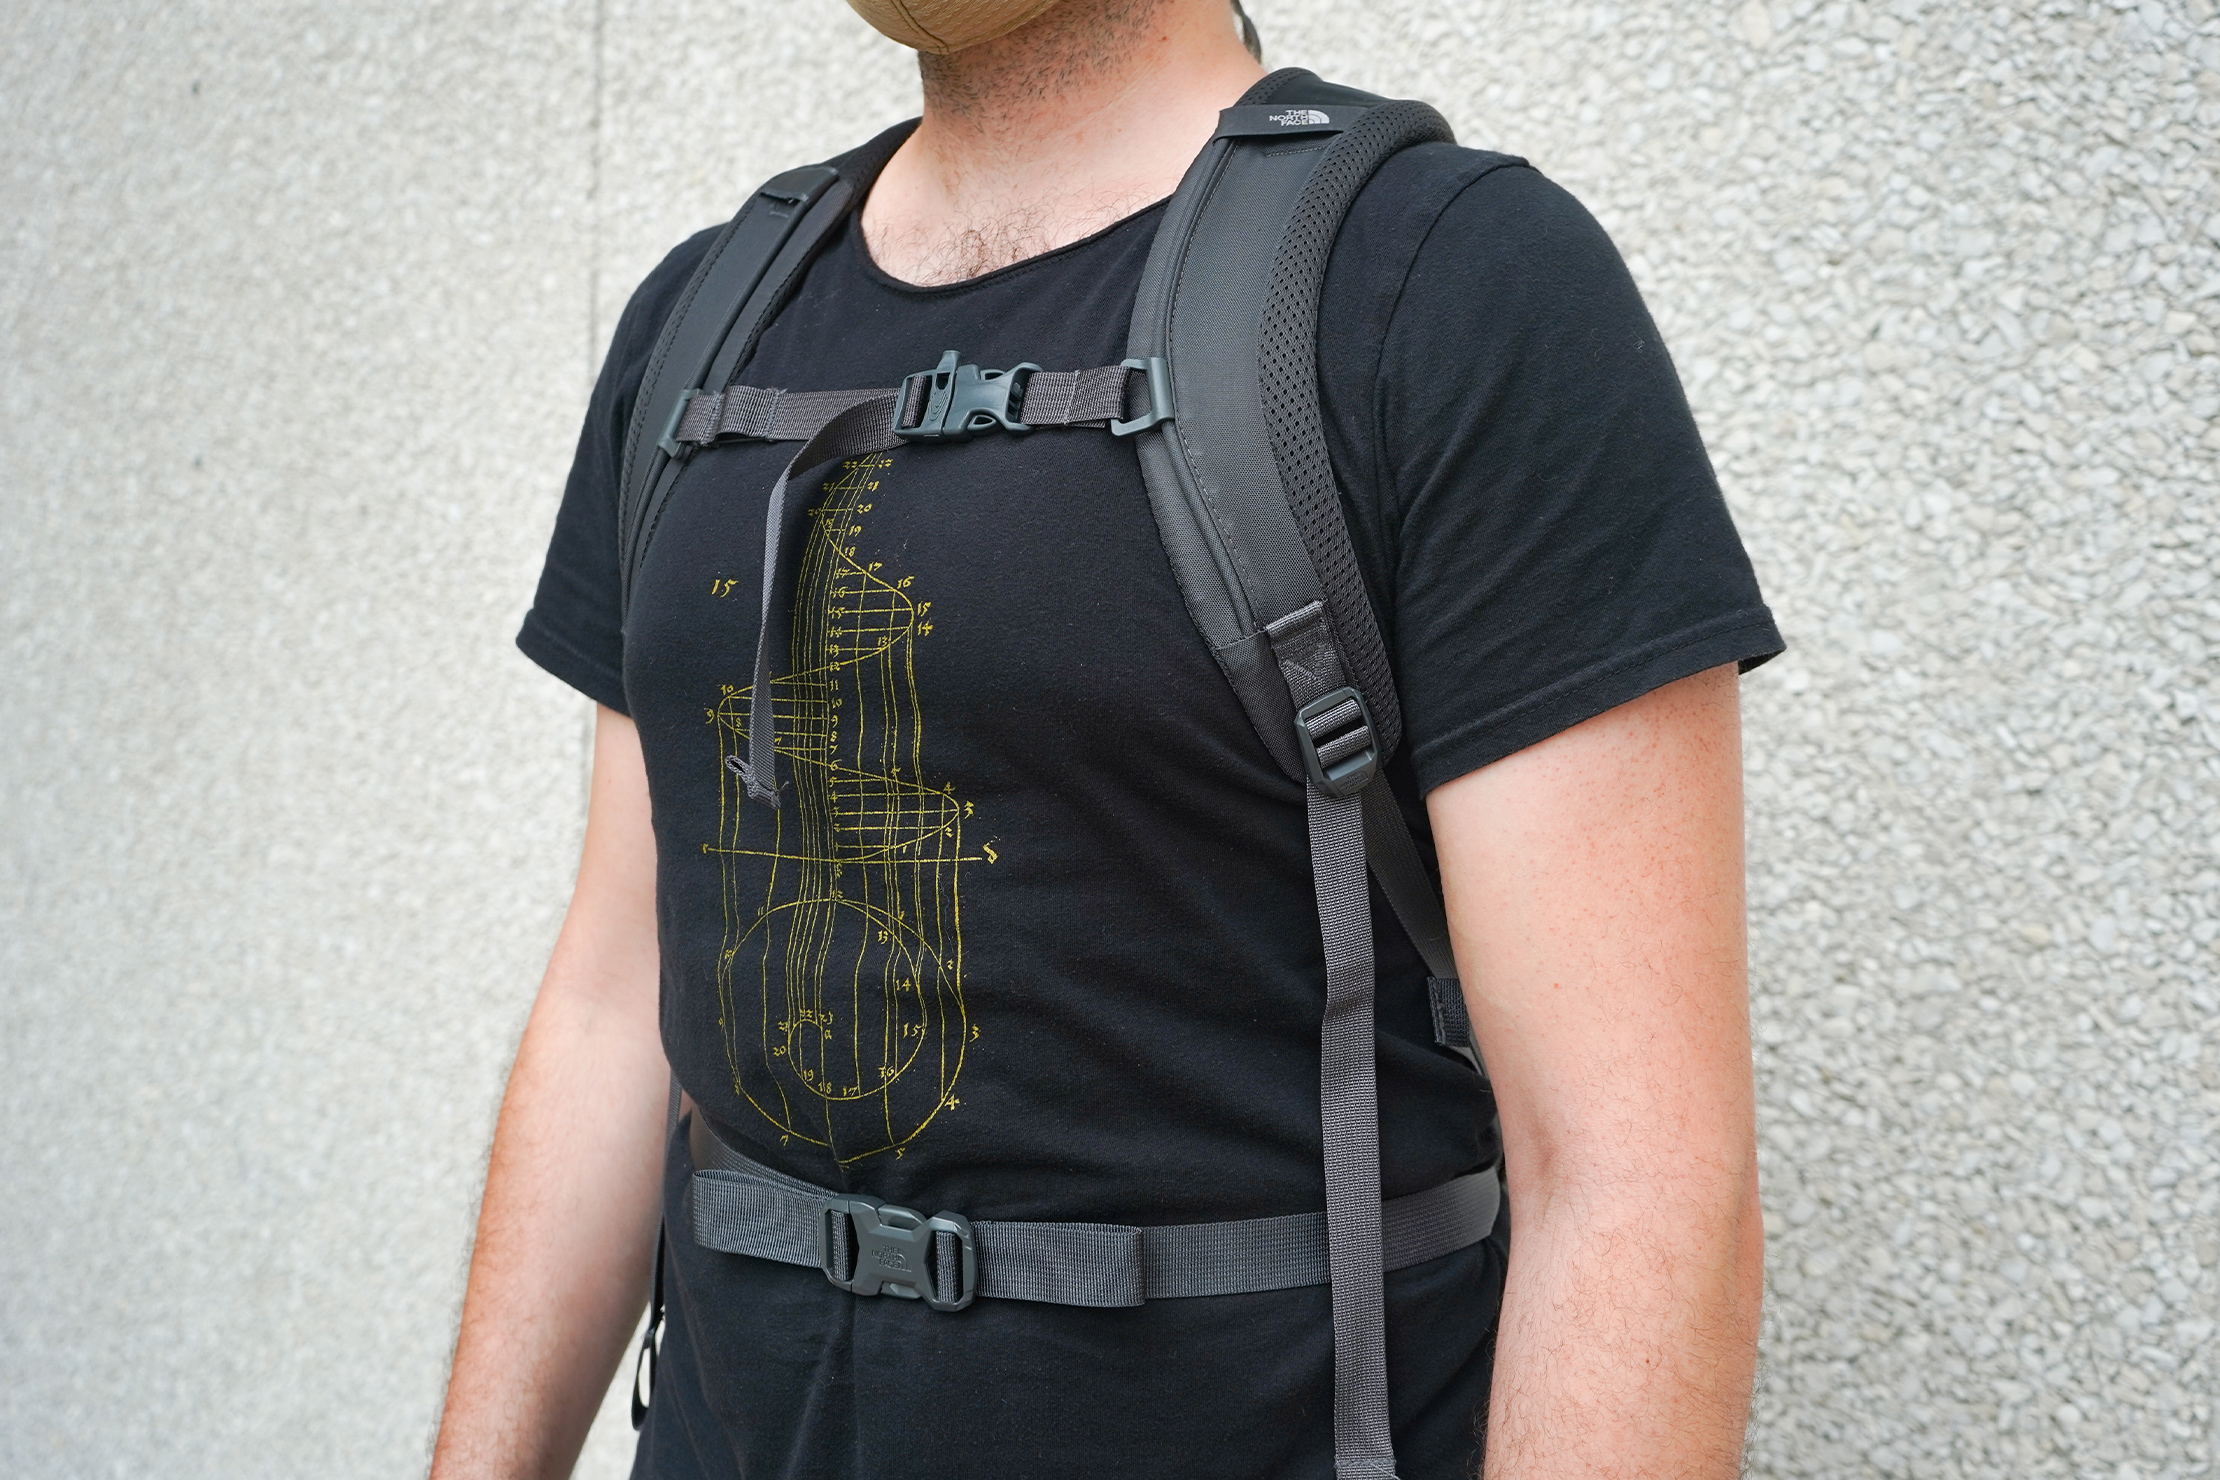 The North Face Borealis Backpack Harness System